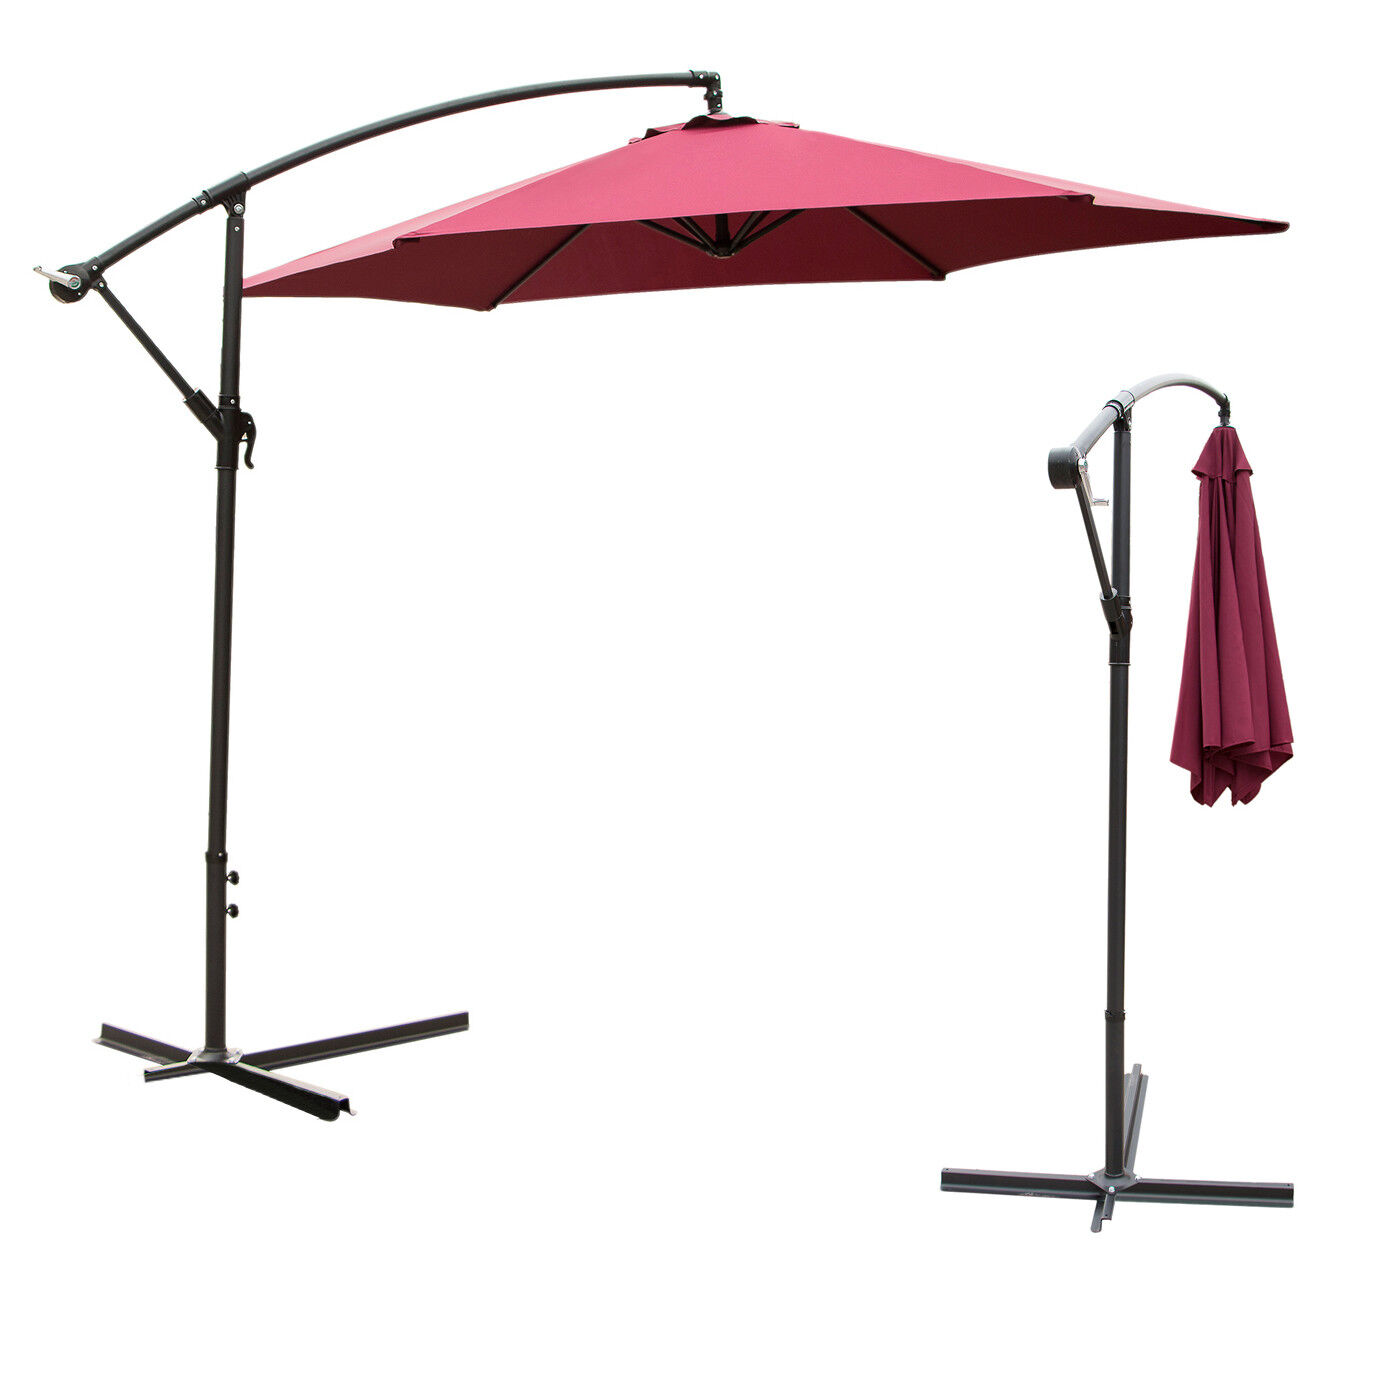 10Ft Outdoor Hanging Umbrella Patio Sun Shade Offset Crank C